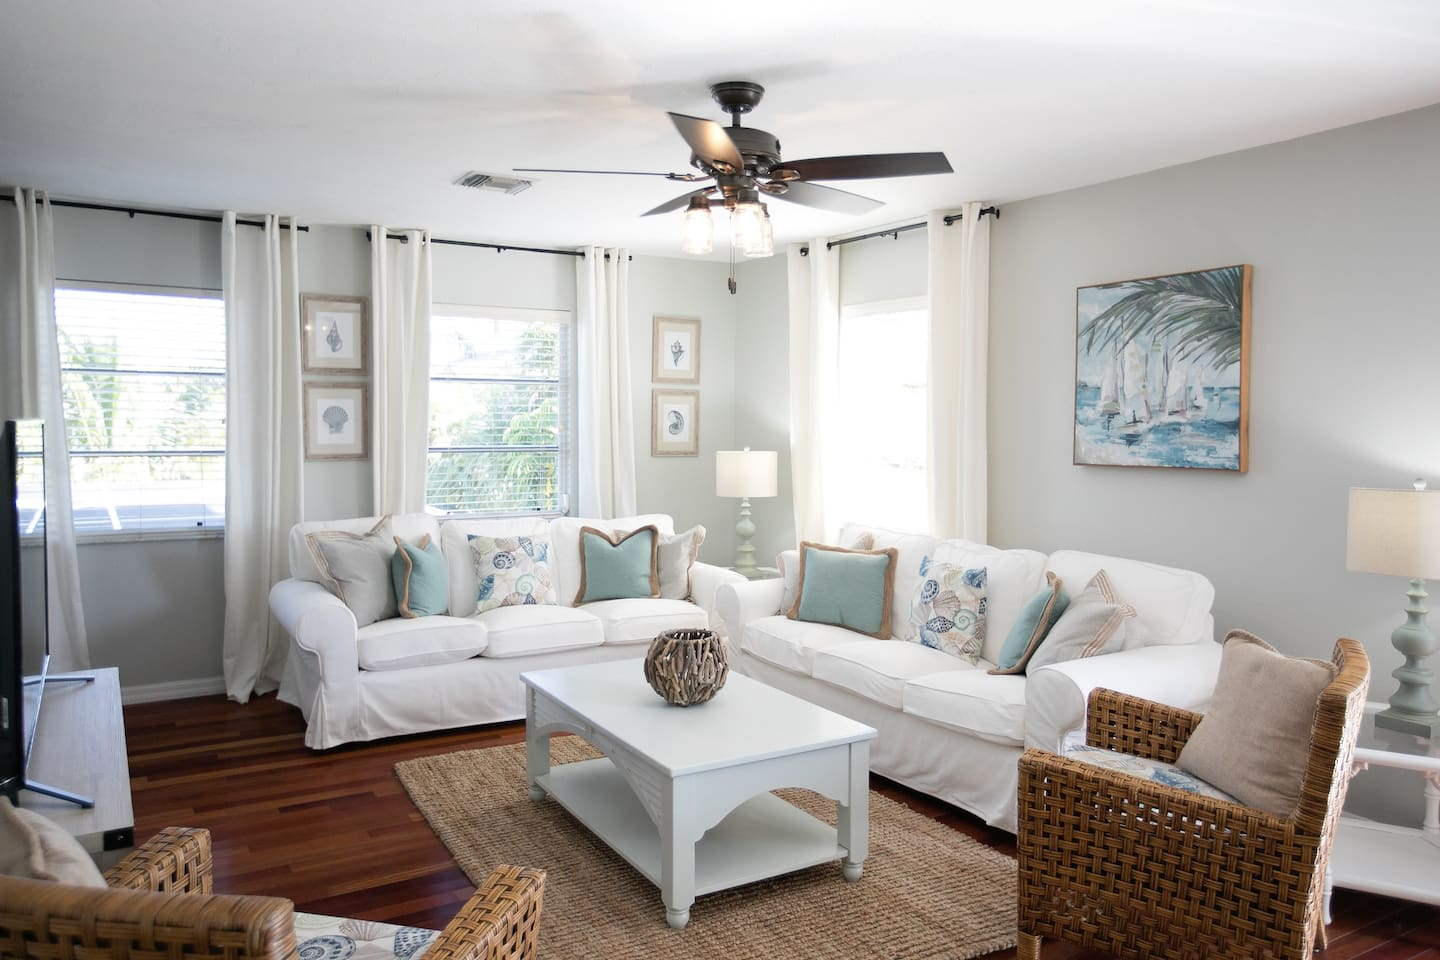 Newly renovated in summer 2018, this home is fully stocked with a full kitchen, grill, linens, baby bed etc. Seating in dining room for 10 and outdoor pool seating for 10. Electric six seater golf cart  included in your stay. Linen service included!